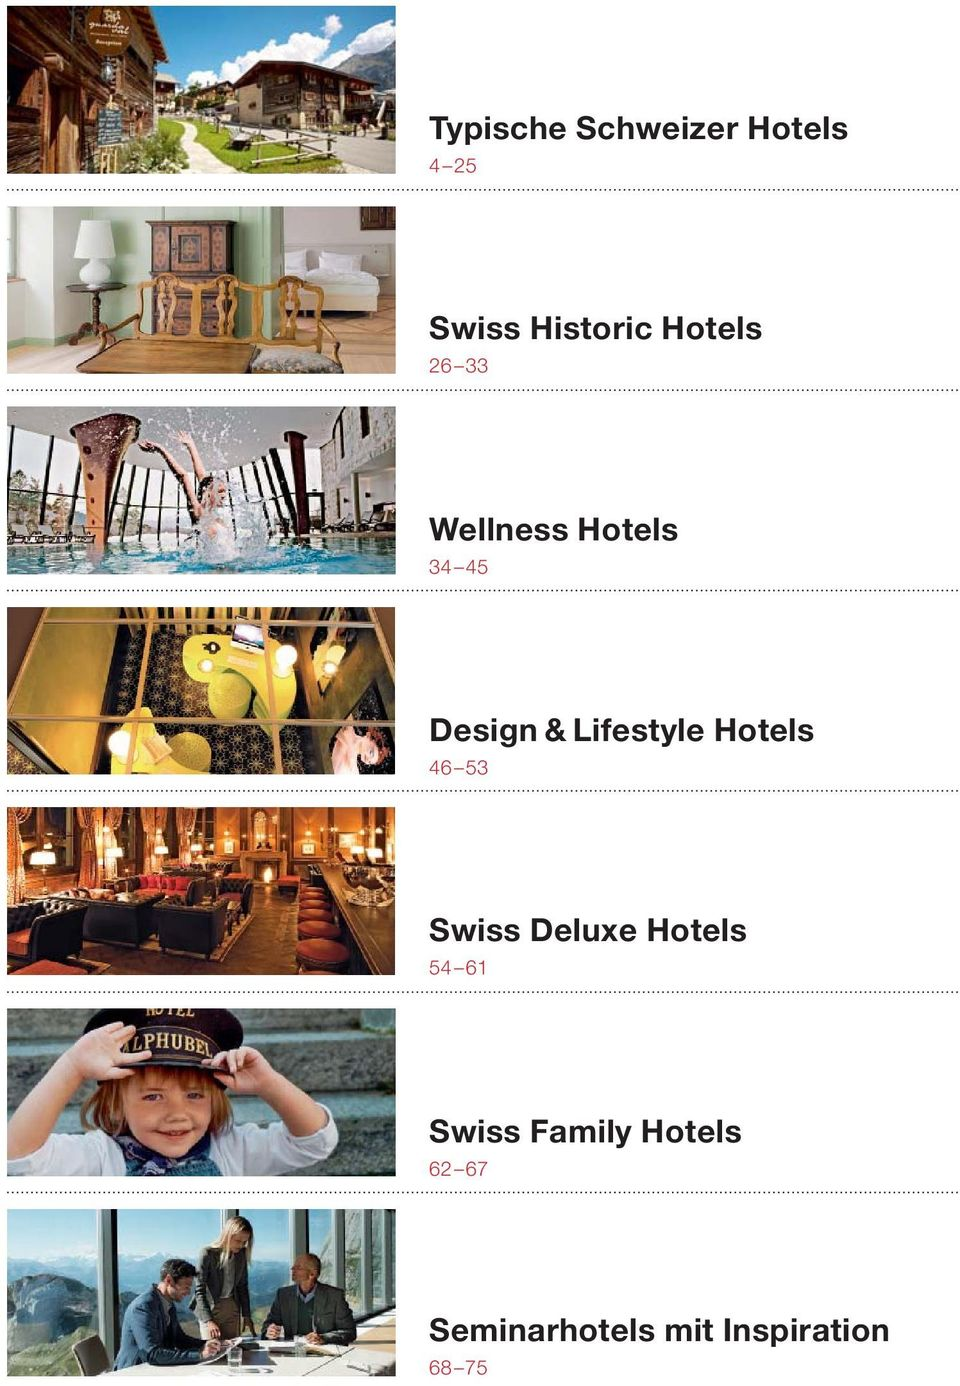 Lifestyle Hotels 46 53 Swiss Deluxe Hotels 54 61